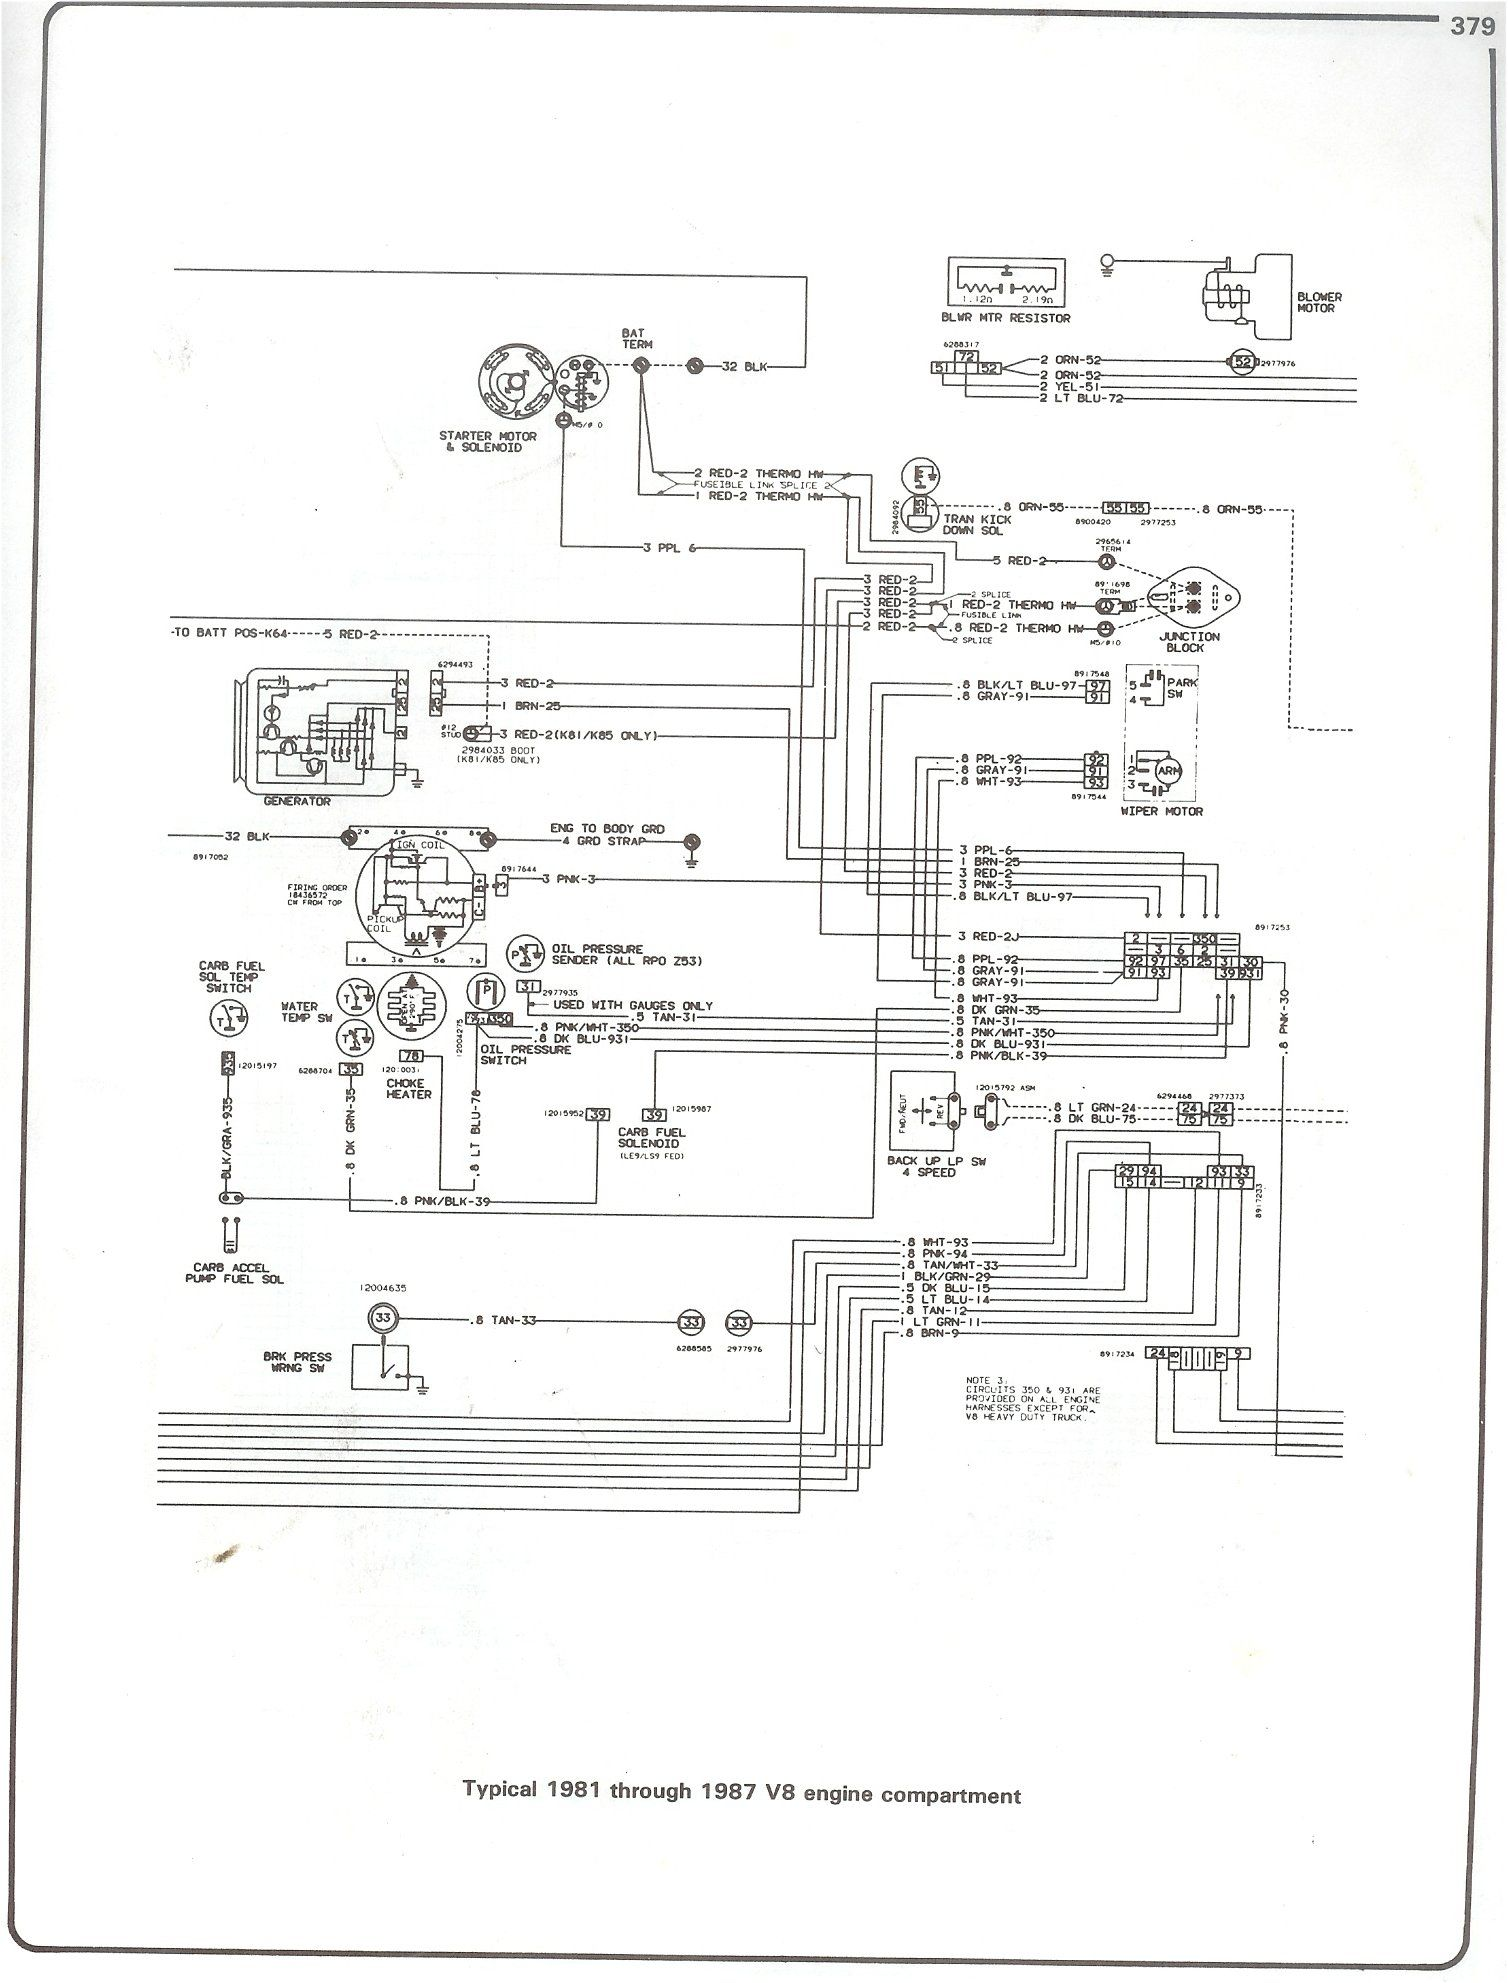 wiring diagram 1987 chevy truck wiring diagram sequence1987 chevy wiring diagram electrical wiring diagram wiring diagram for 1987 chevy truck fuel pump 73